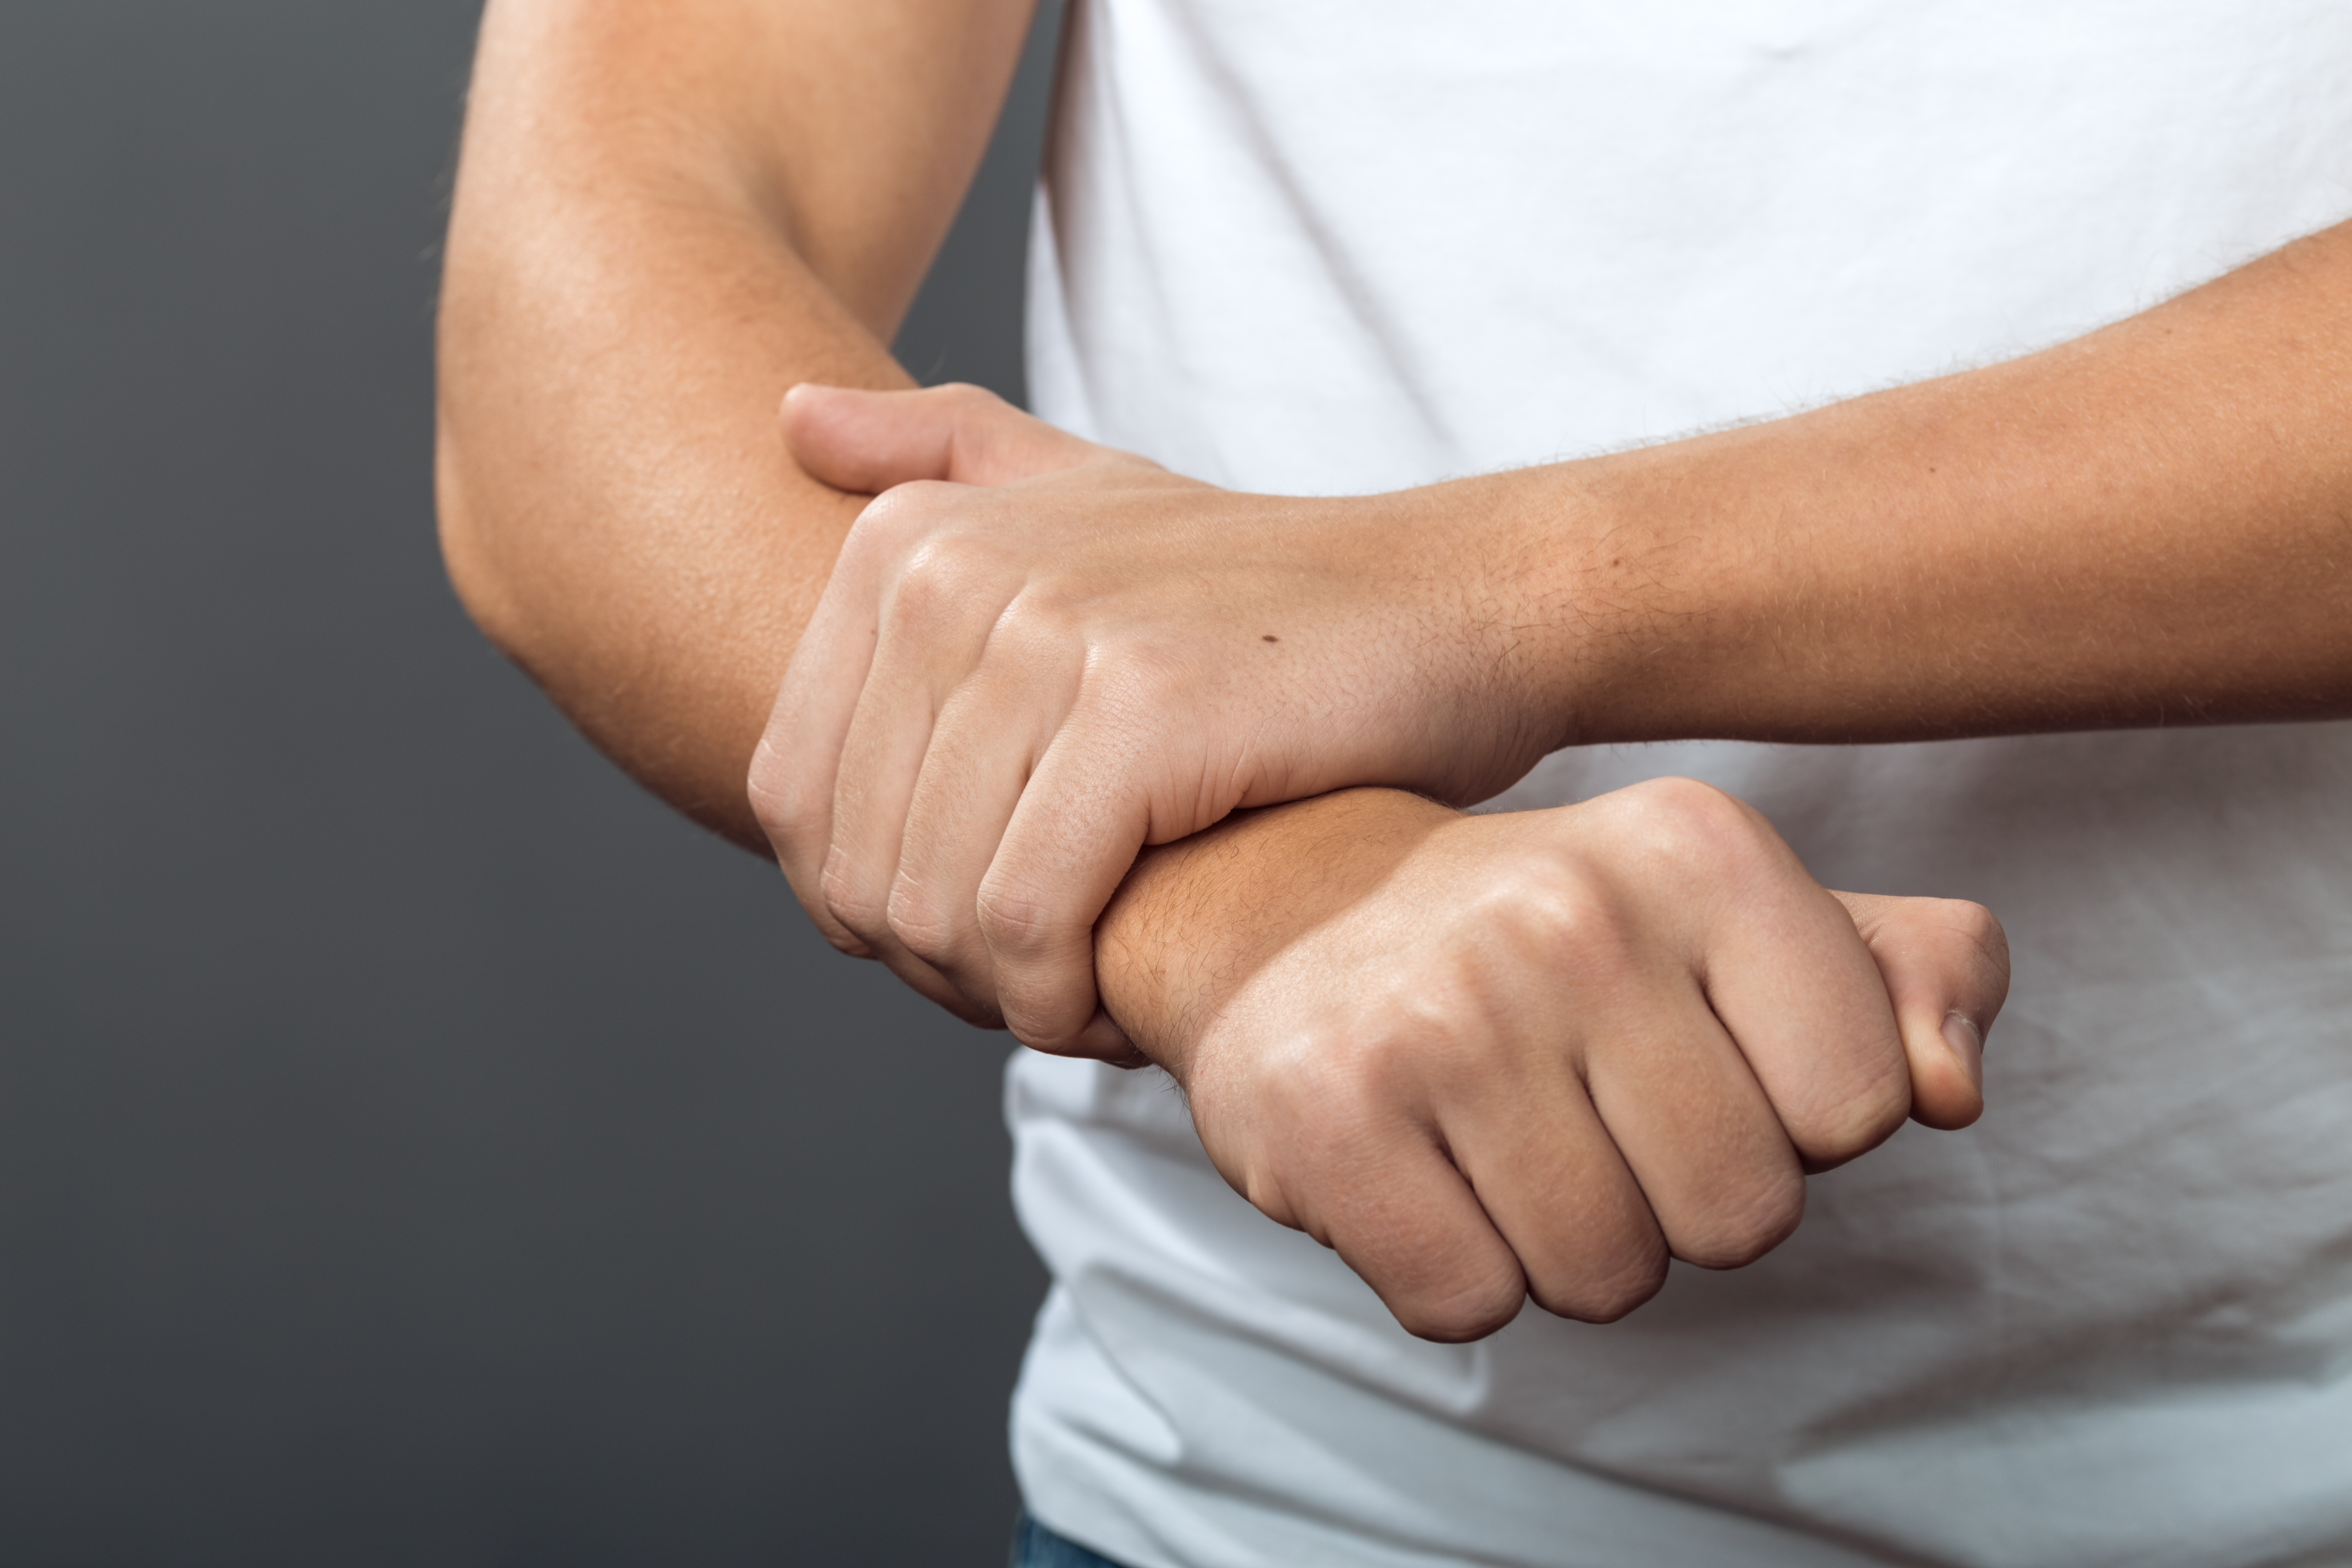 Reasons Your Forearm Muscles Are Twitching: ALS Possible?